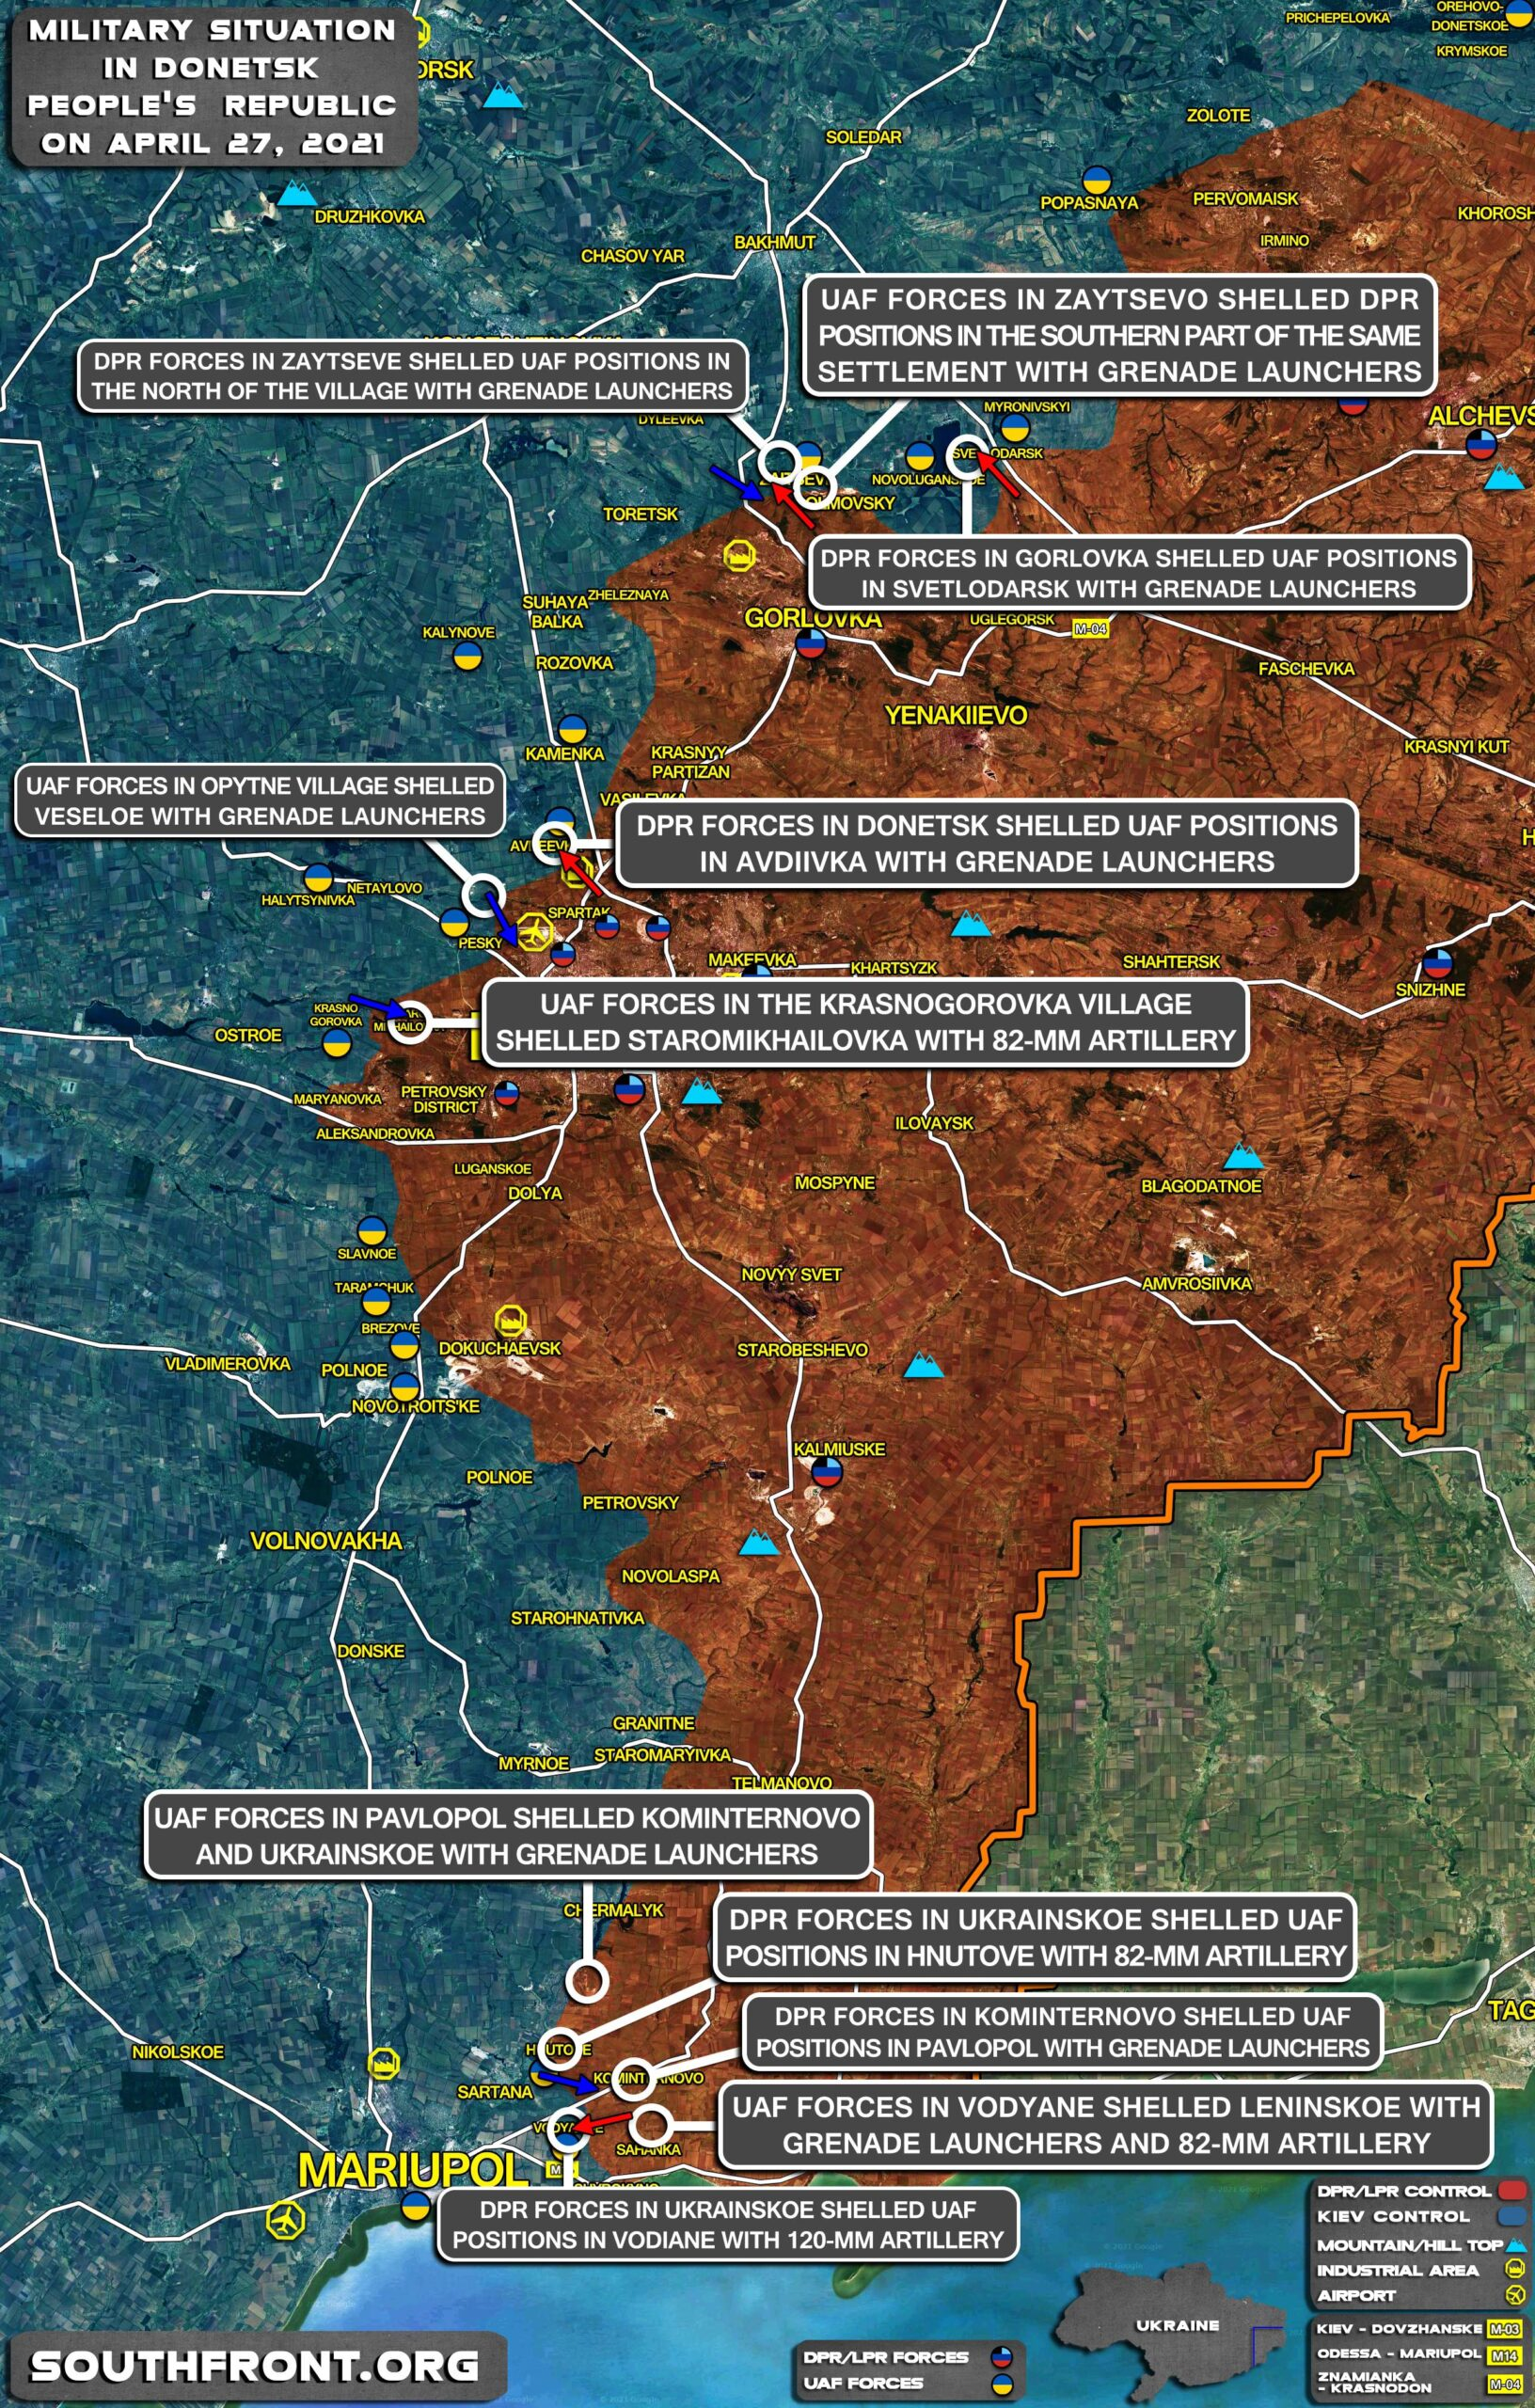 Military Situation In Donetsk People's Republic On April 27, 2021 (Map Update)